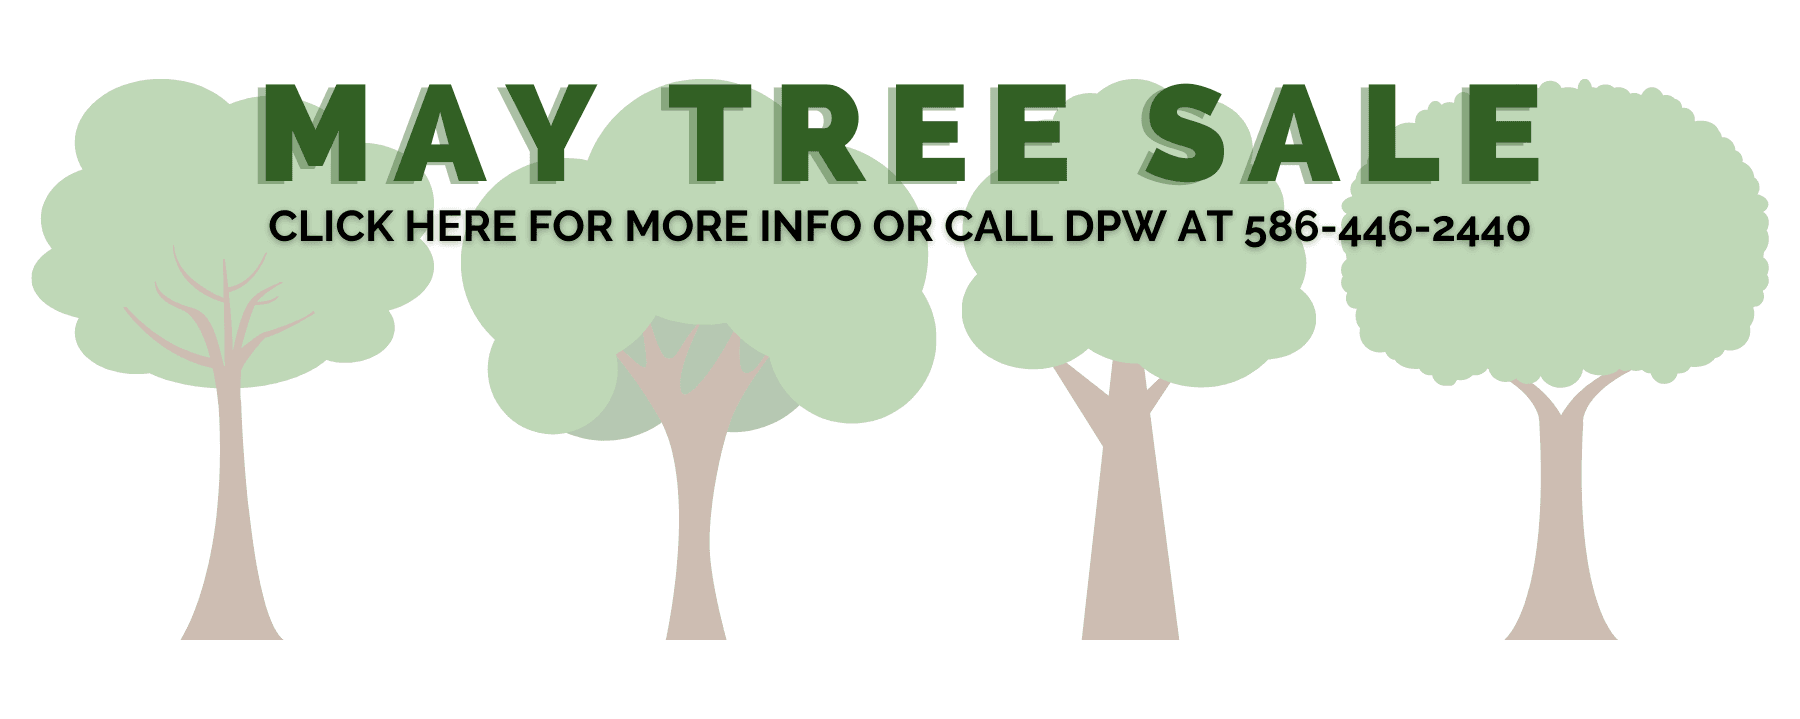 May Tree Sale